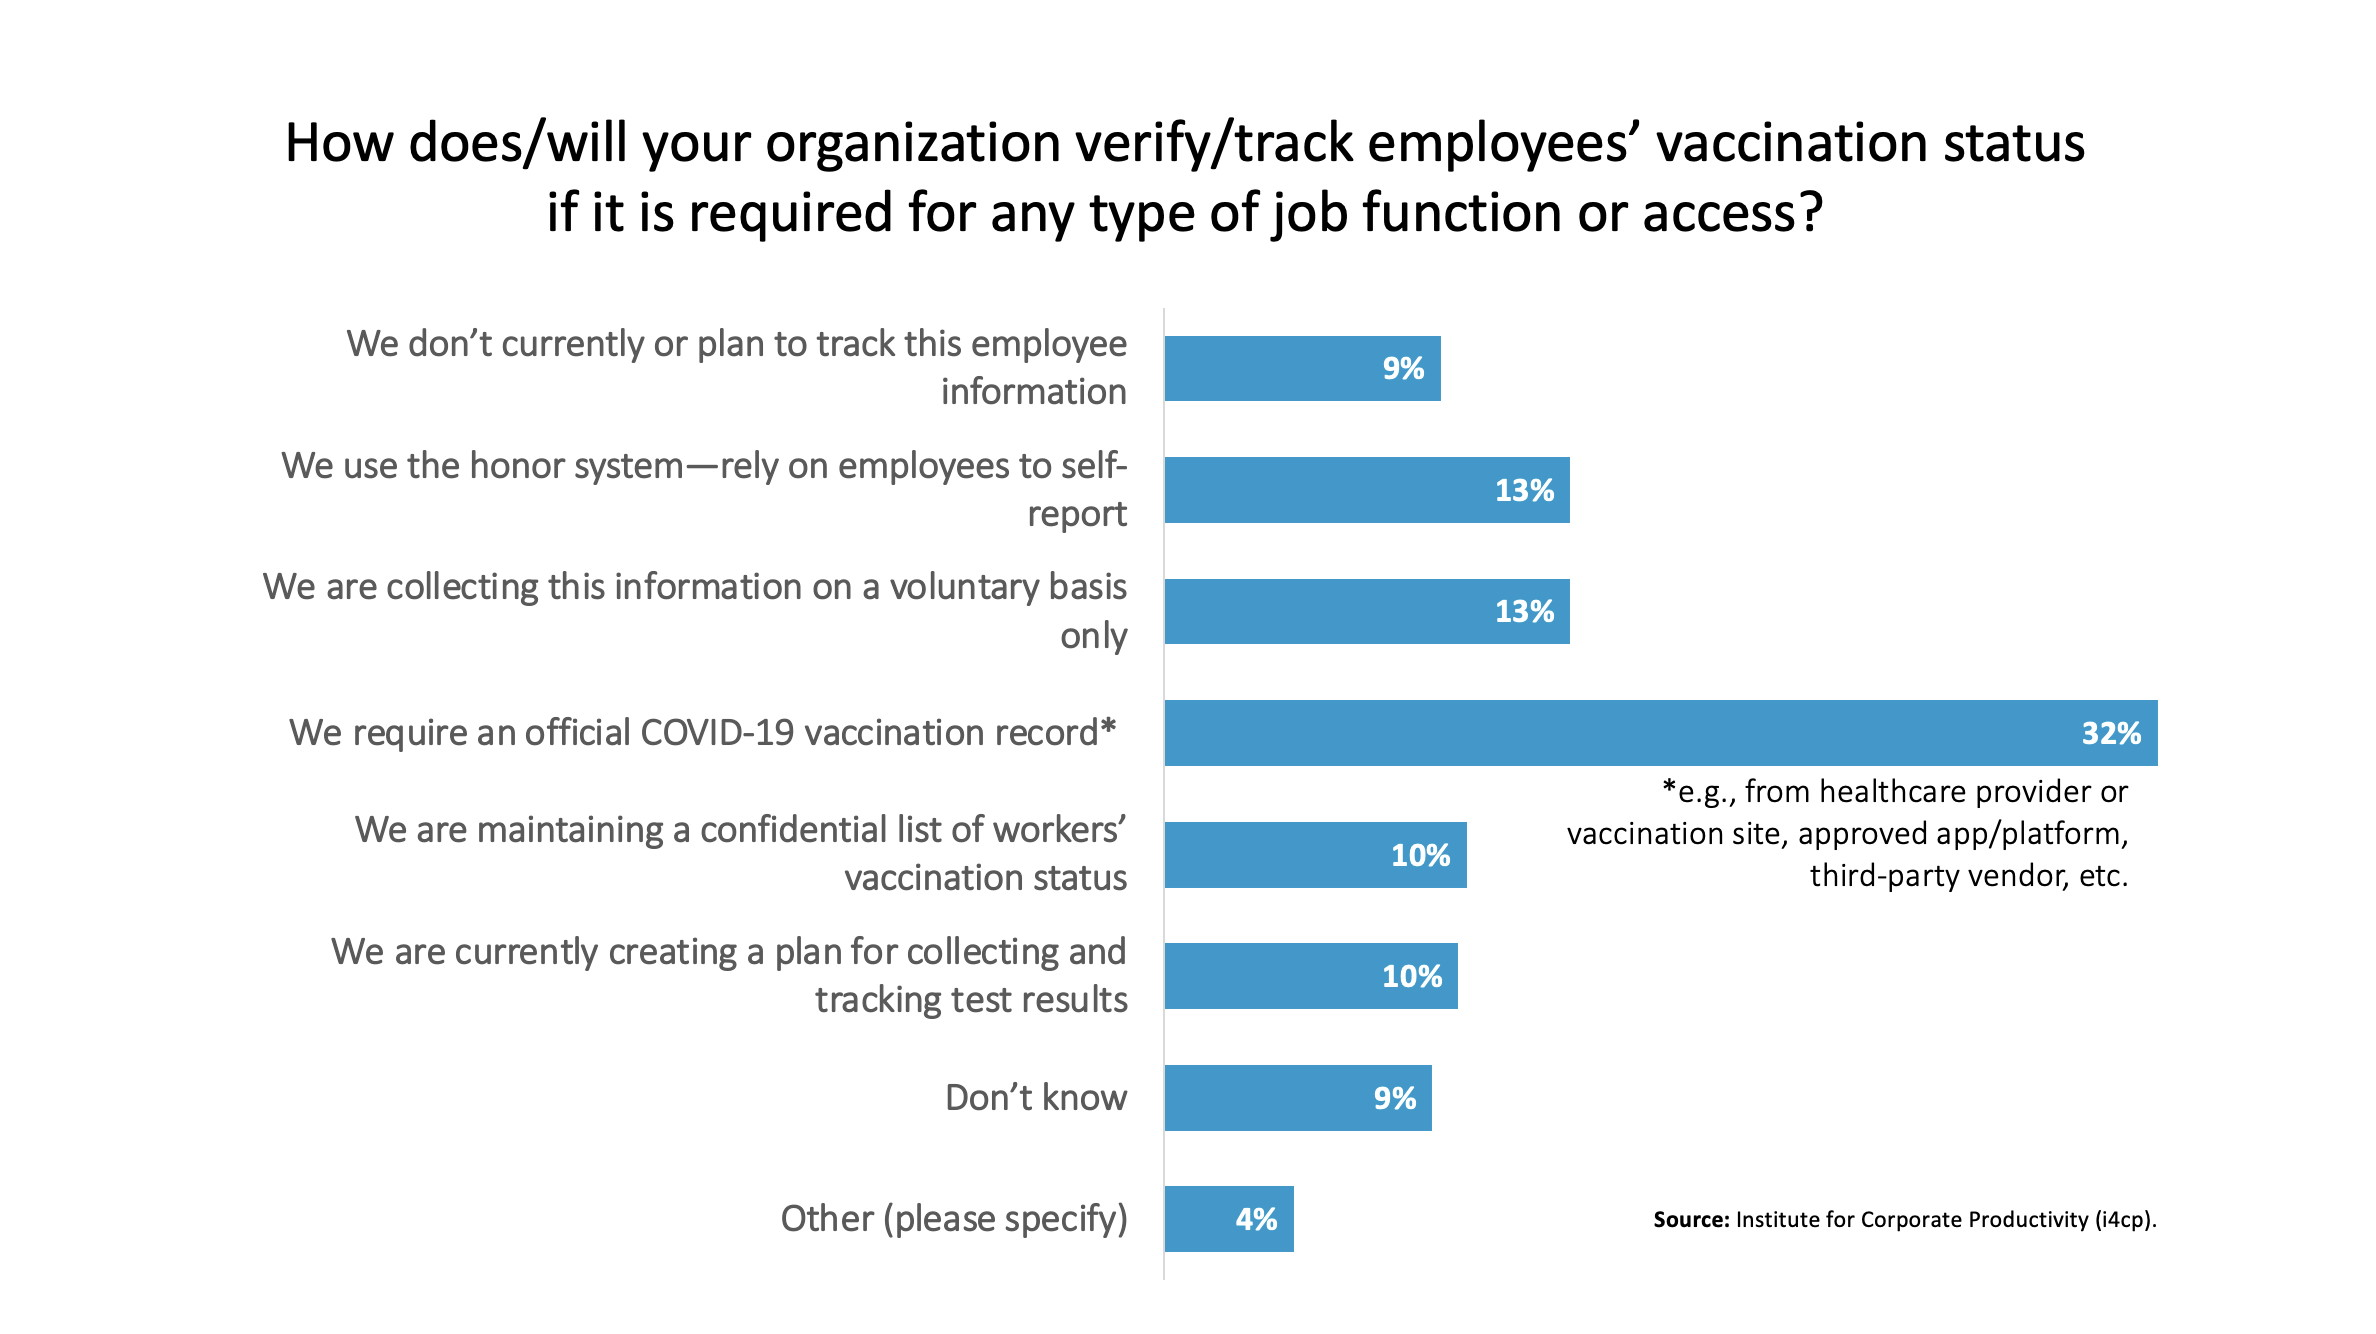 How does your organization track vaccination status